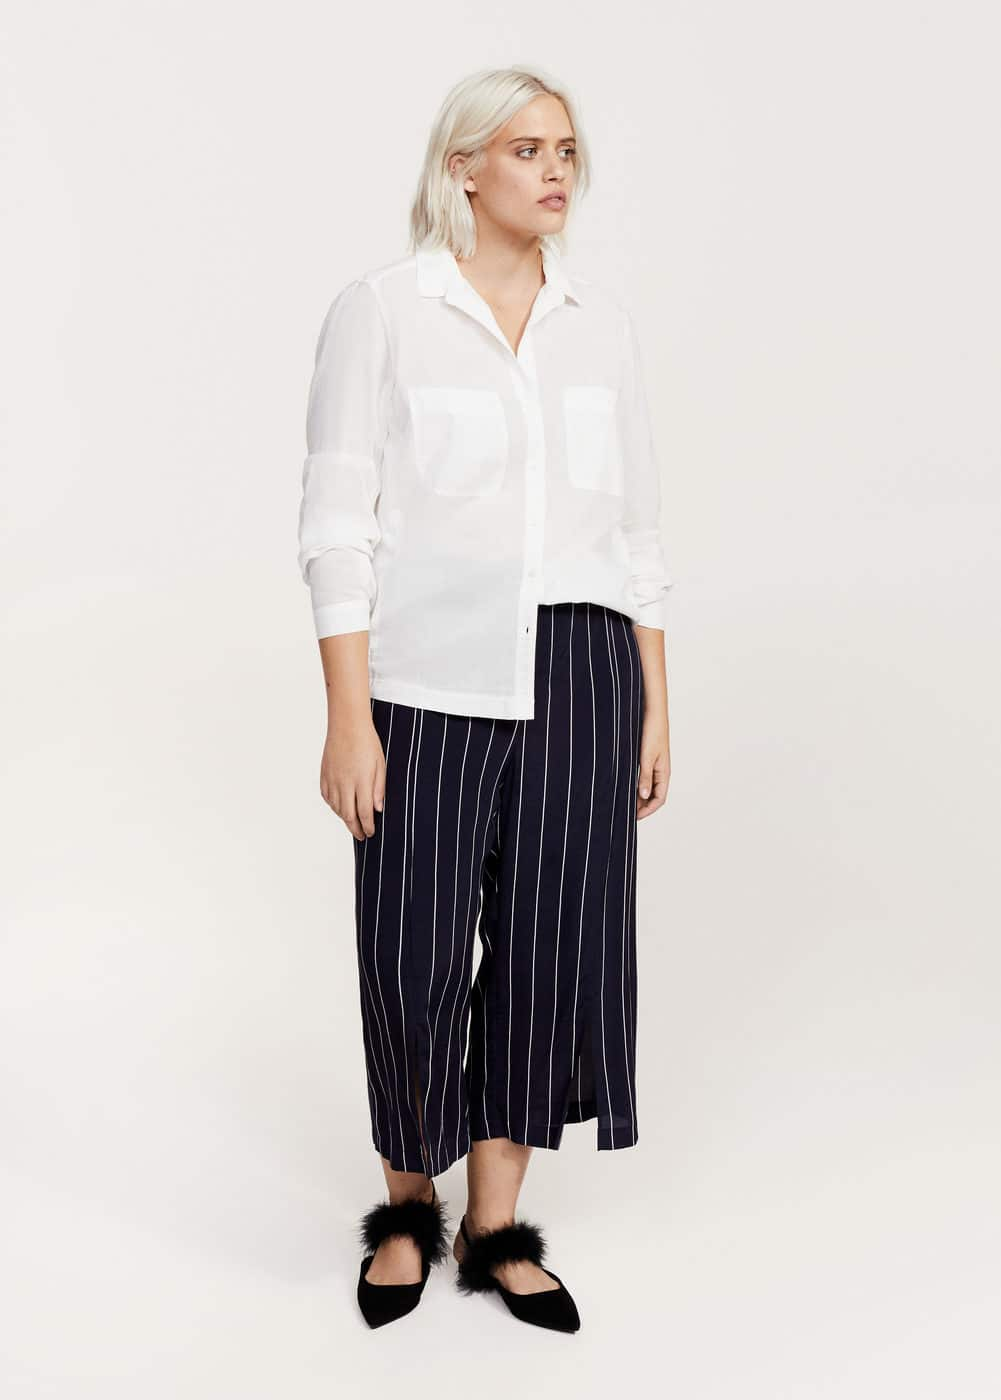 Camisa panell canalé | VIOLETA BY MANGO